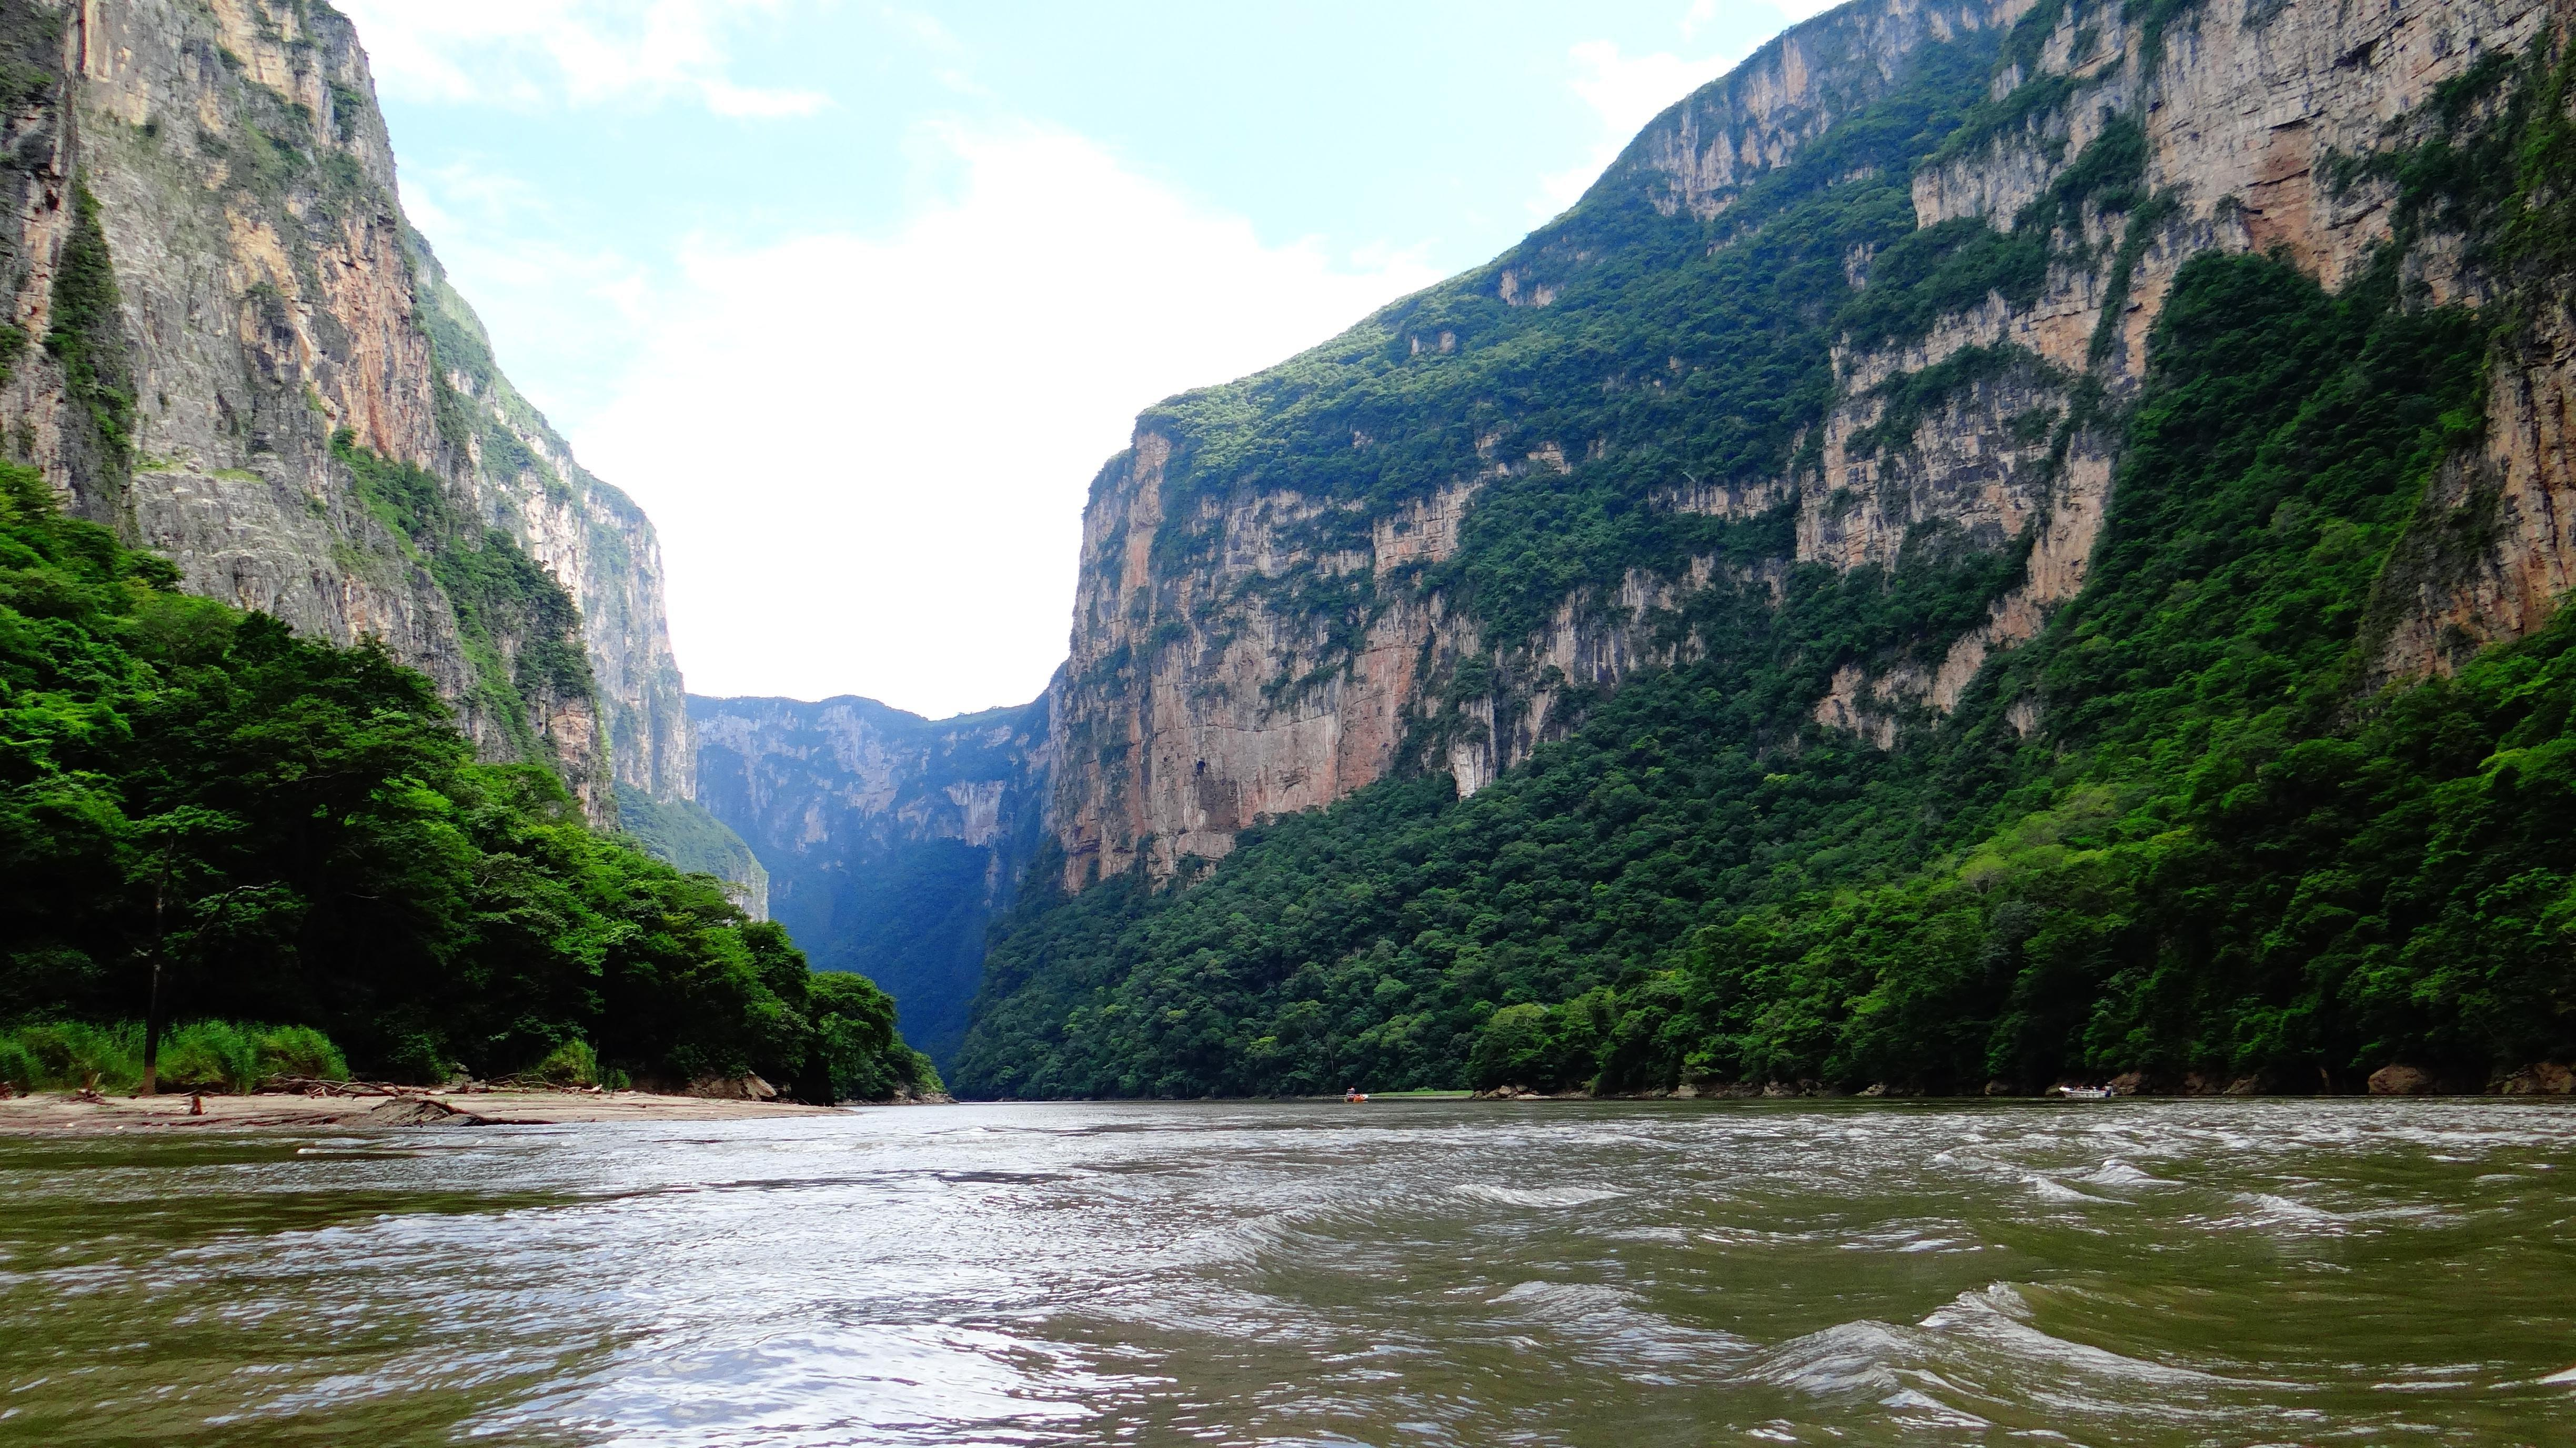 Photos of Sumidero Canyon